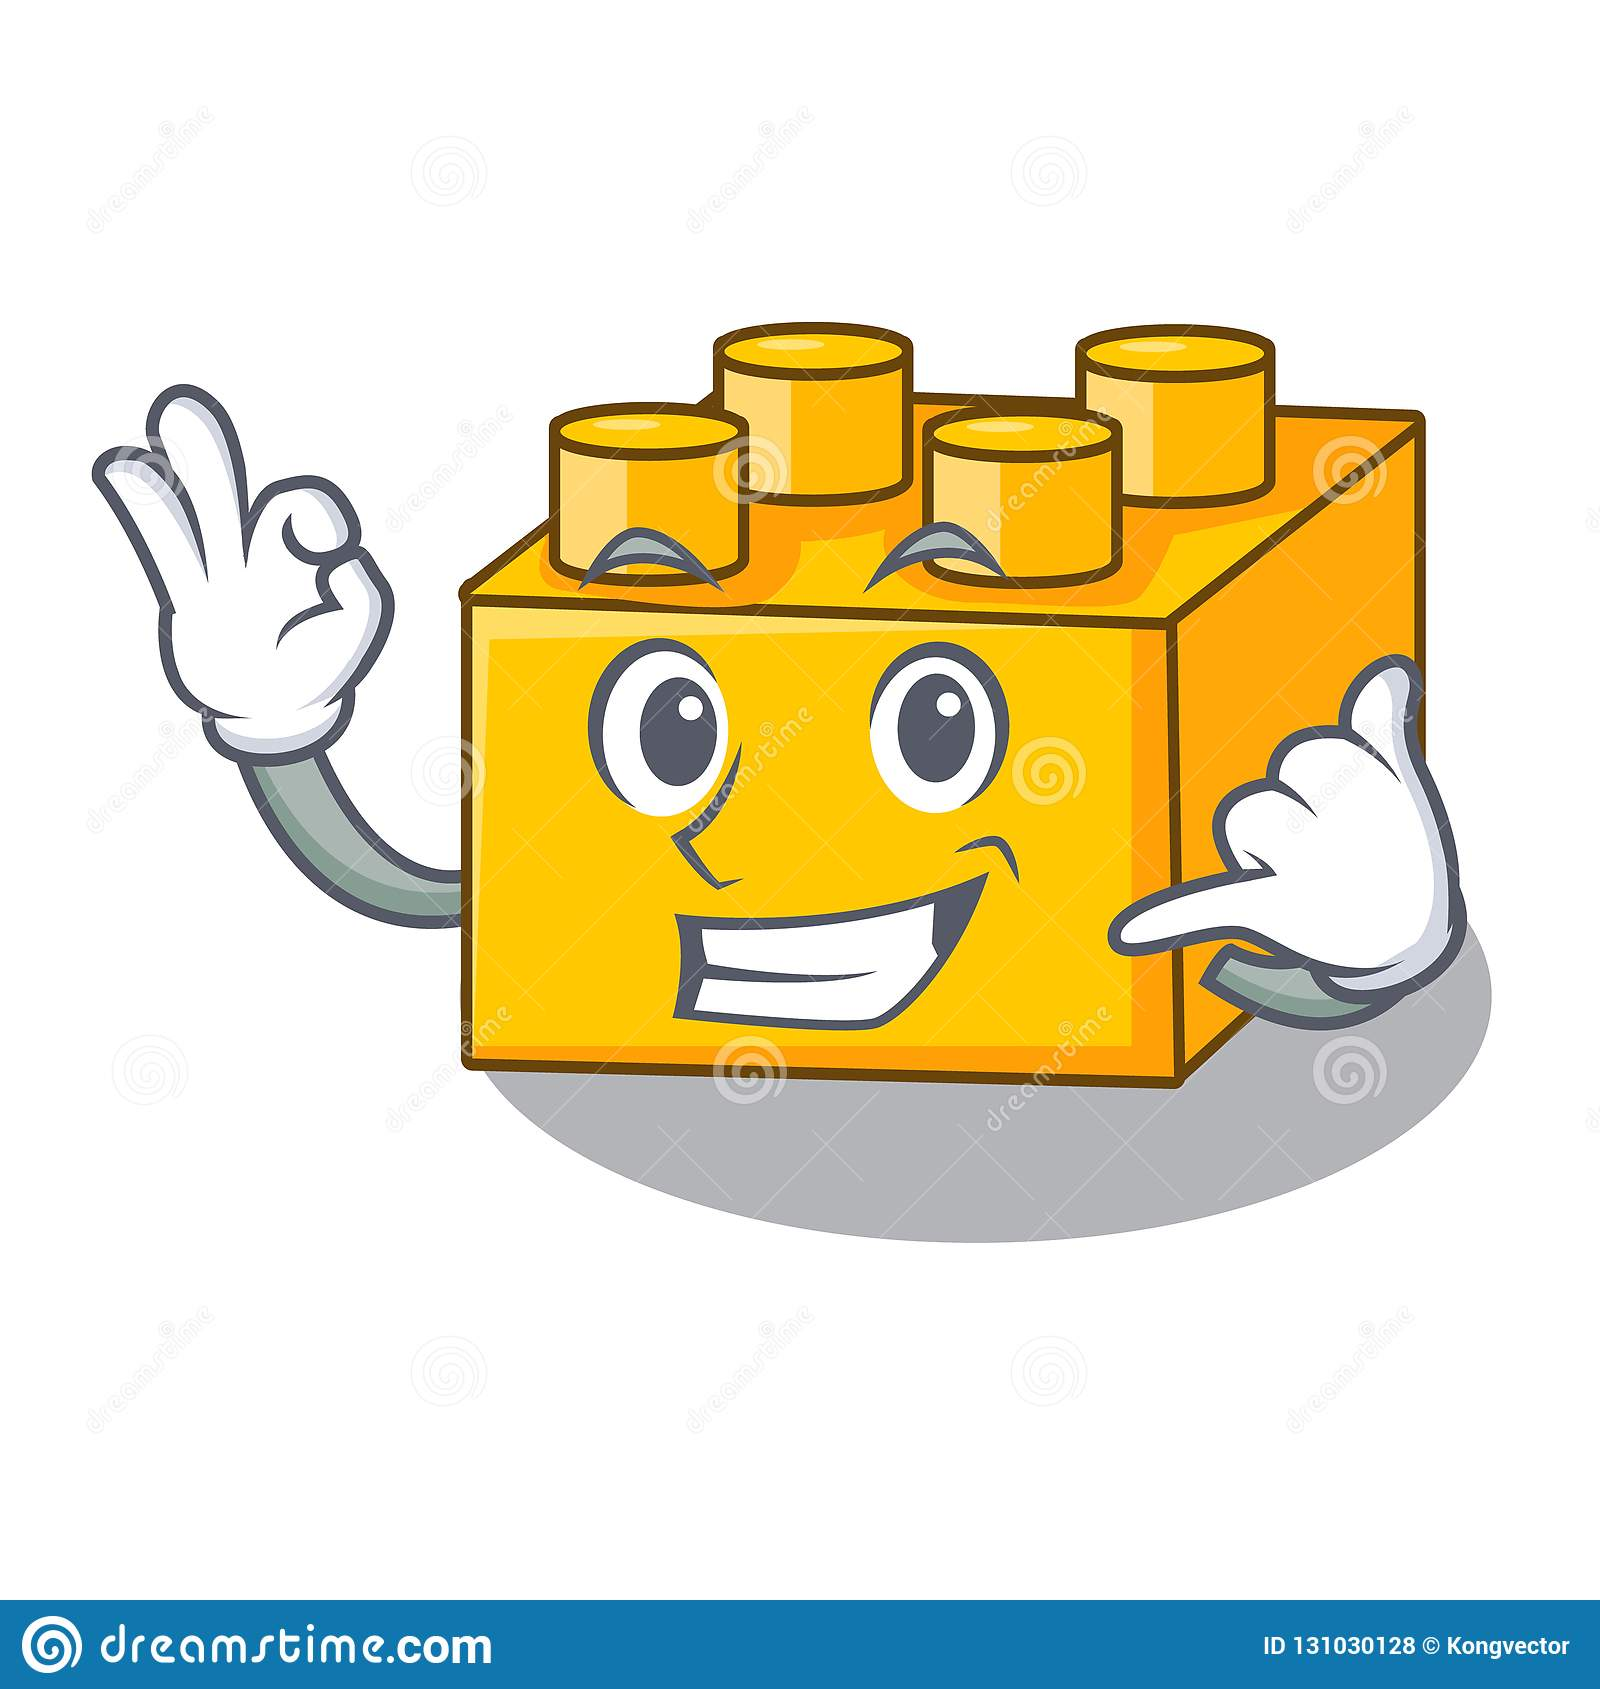 Call Me Plastic Building Tyos Shaped On Mascot Stock Vector